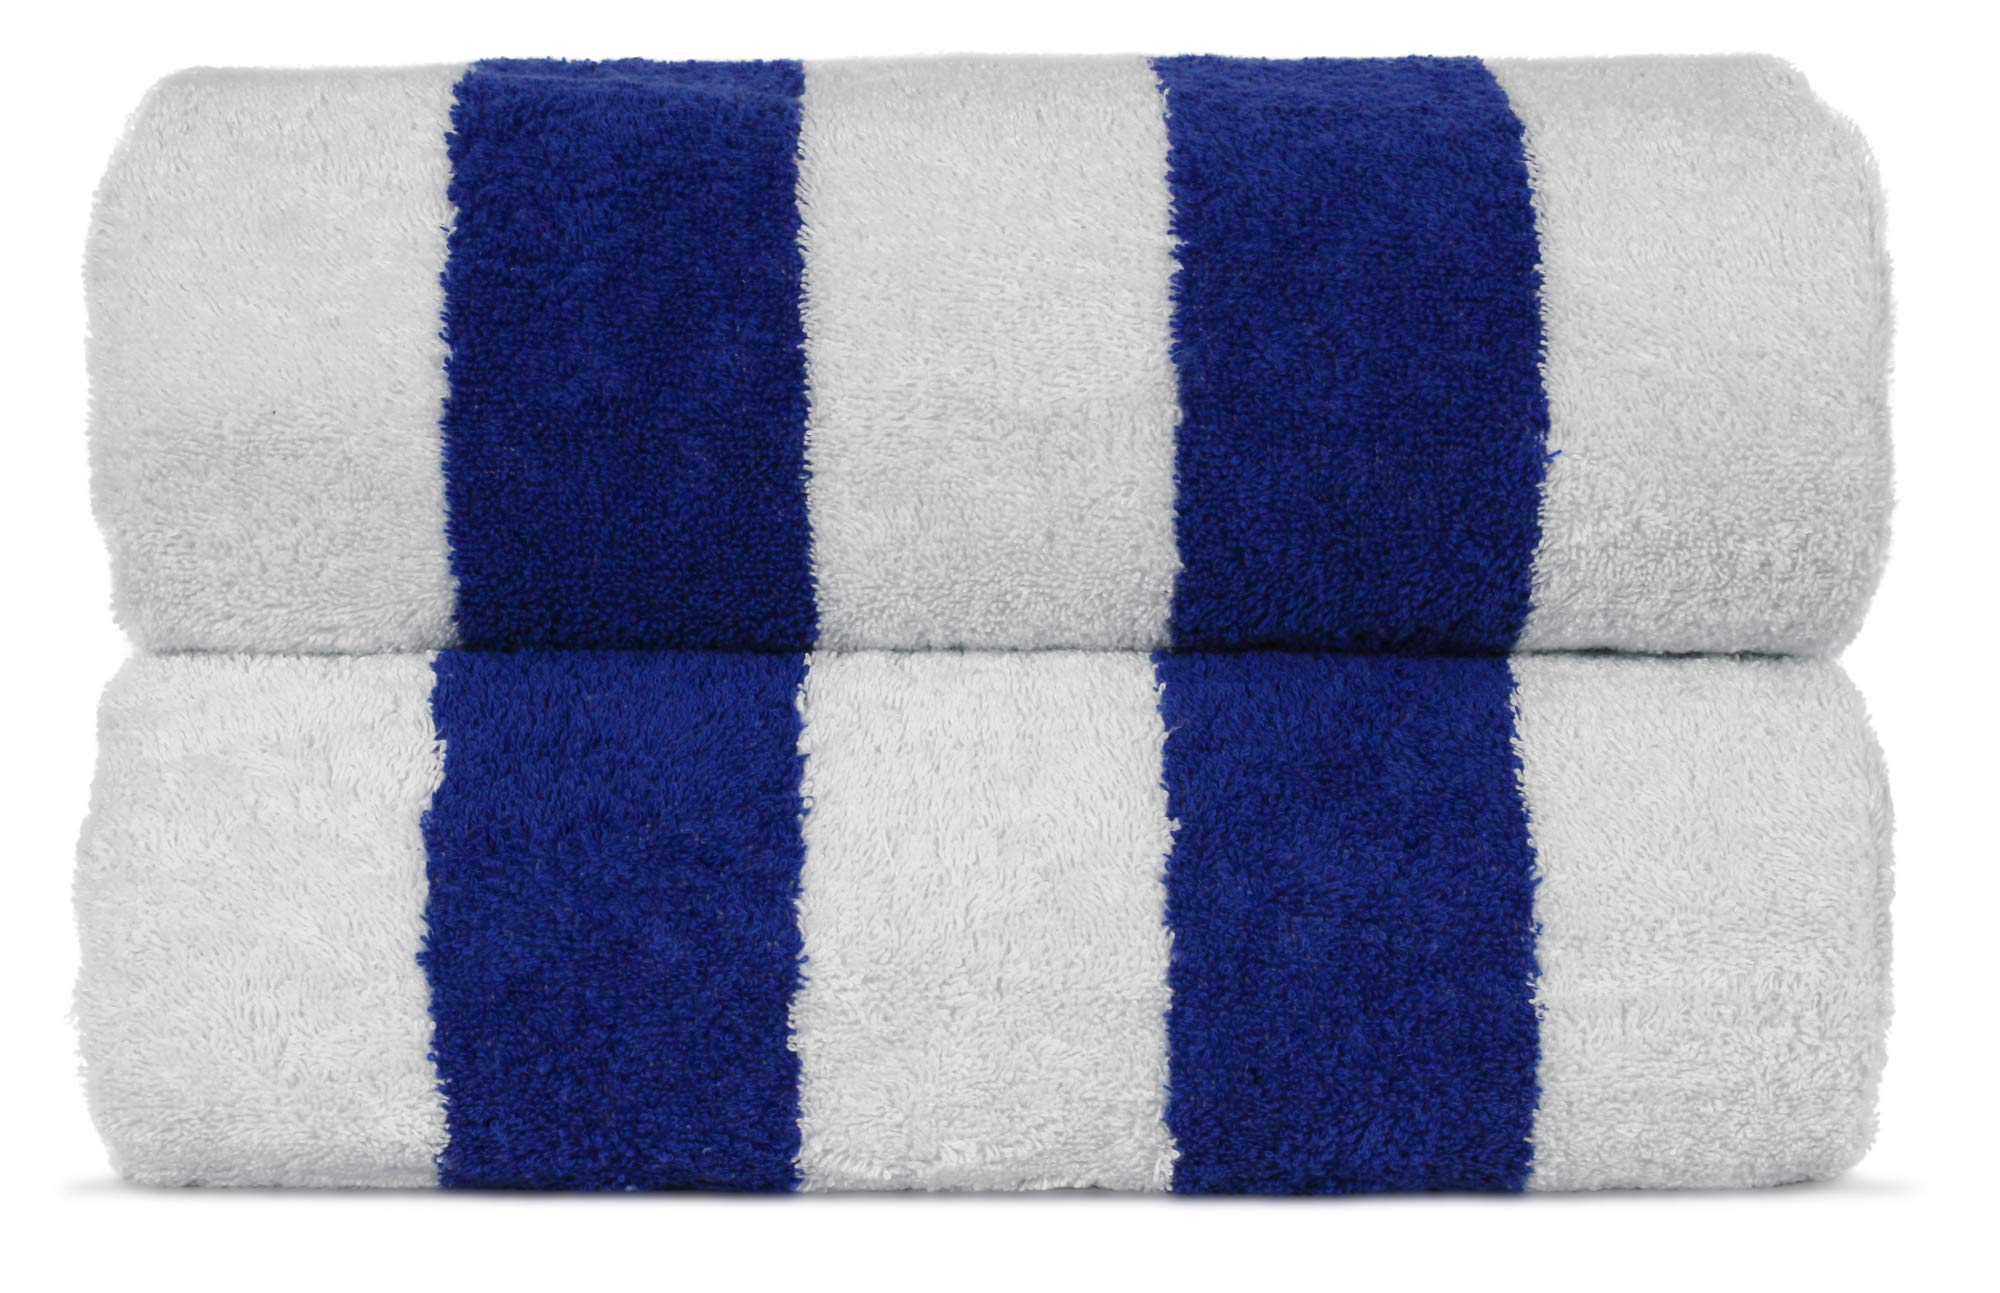 Premium Quality Extra Large Hotel and Spa 2-Piece Beach Towels, Pool Towels with Cabana Stripe, Eco-Friendly, Turkish Cotton (Royal Blue, 35x65 inches)